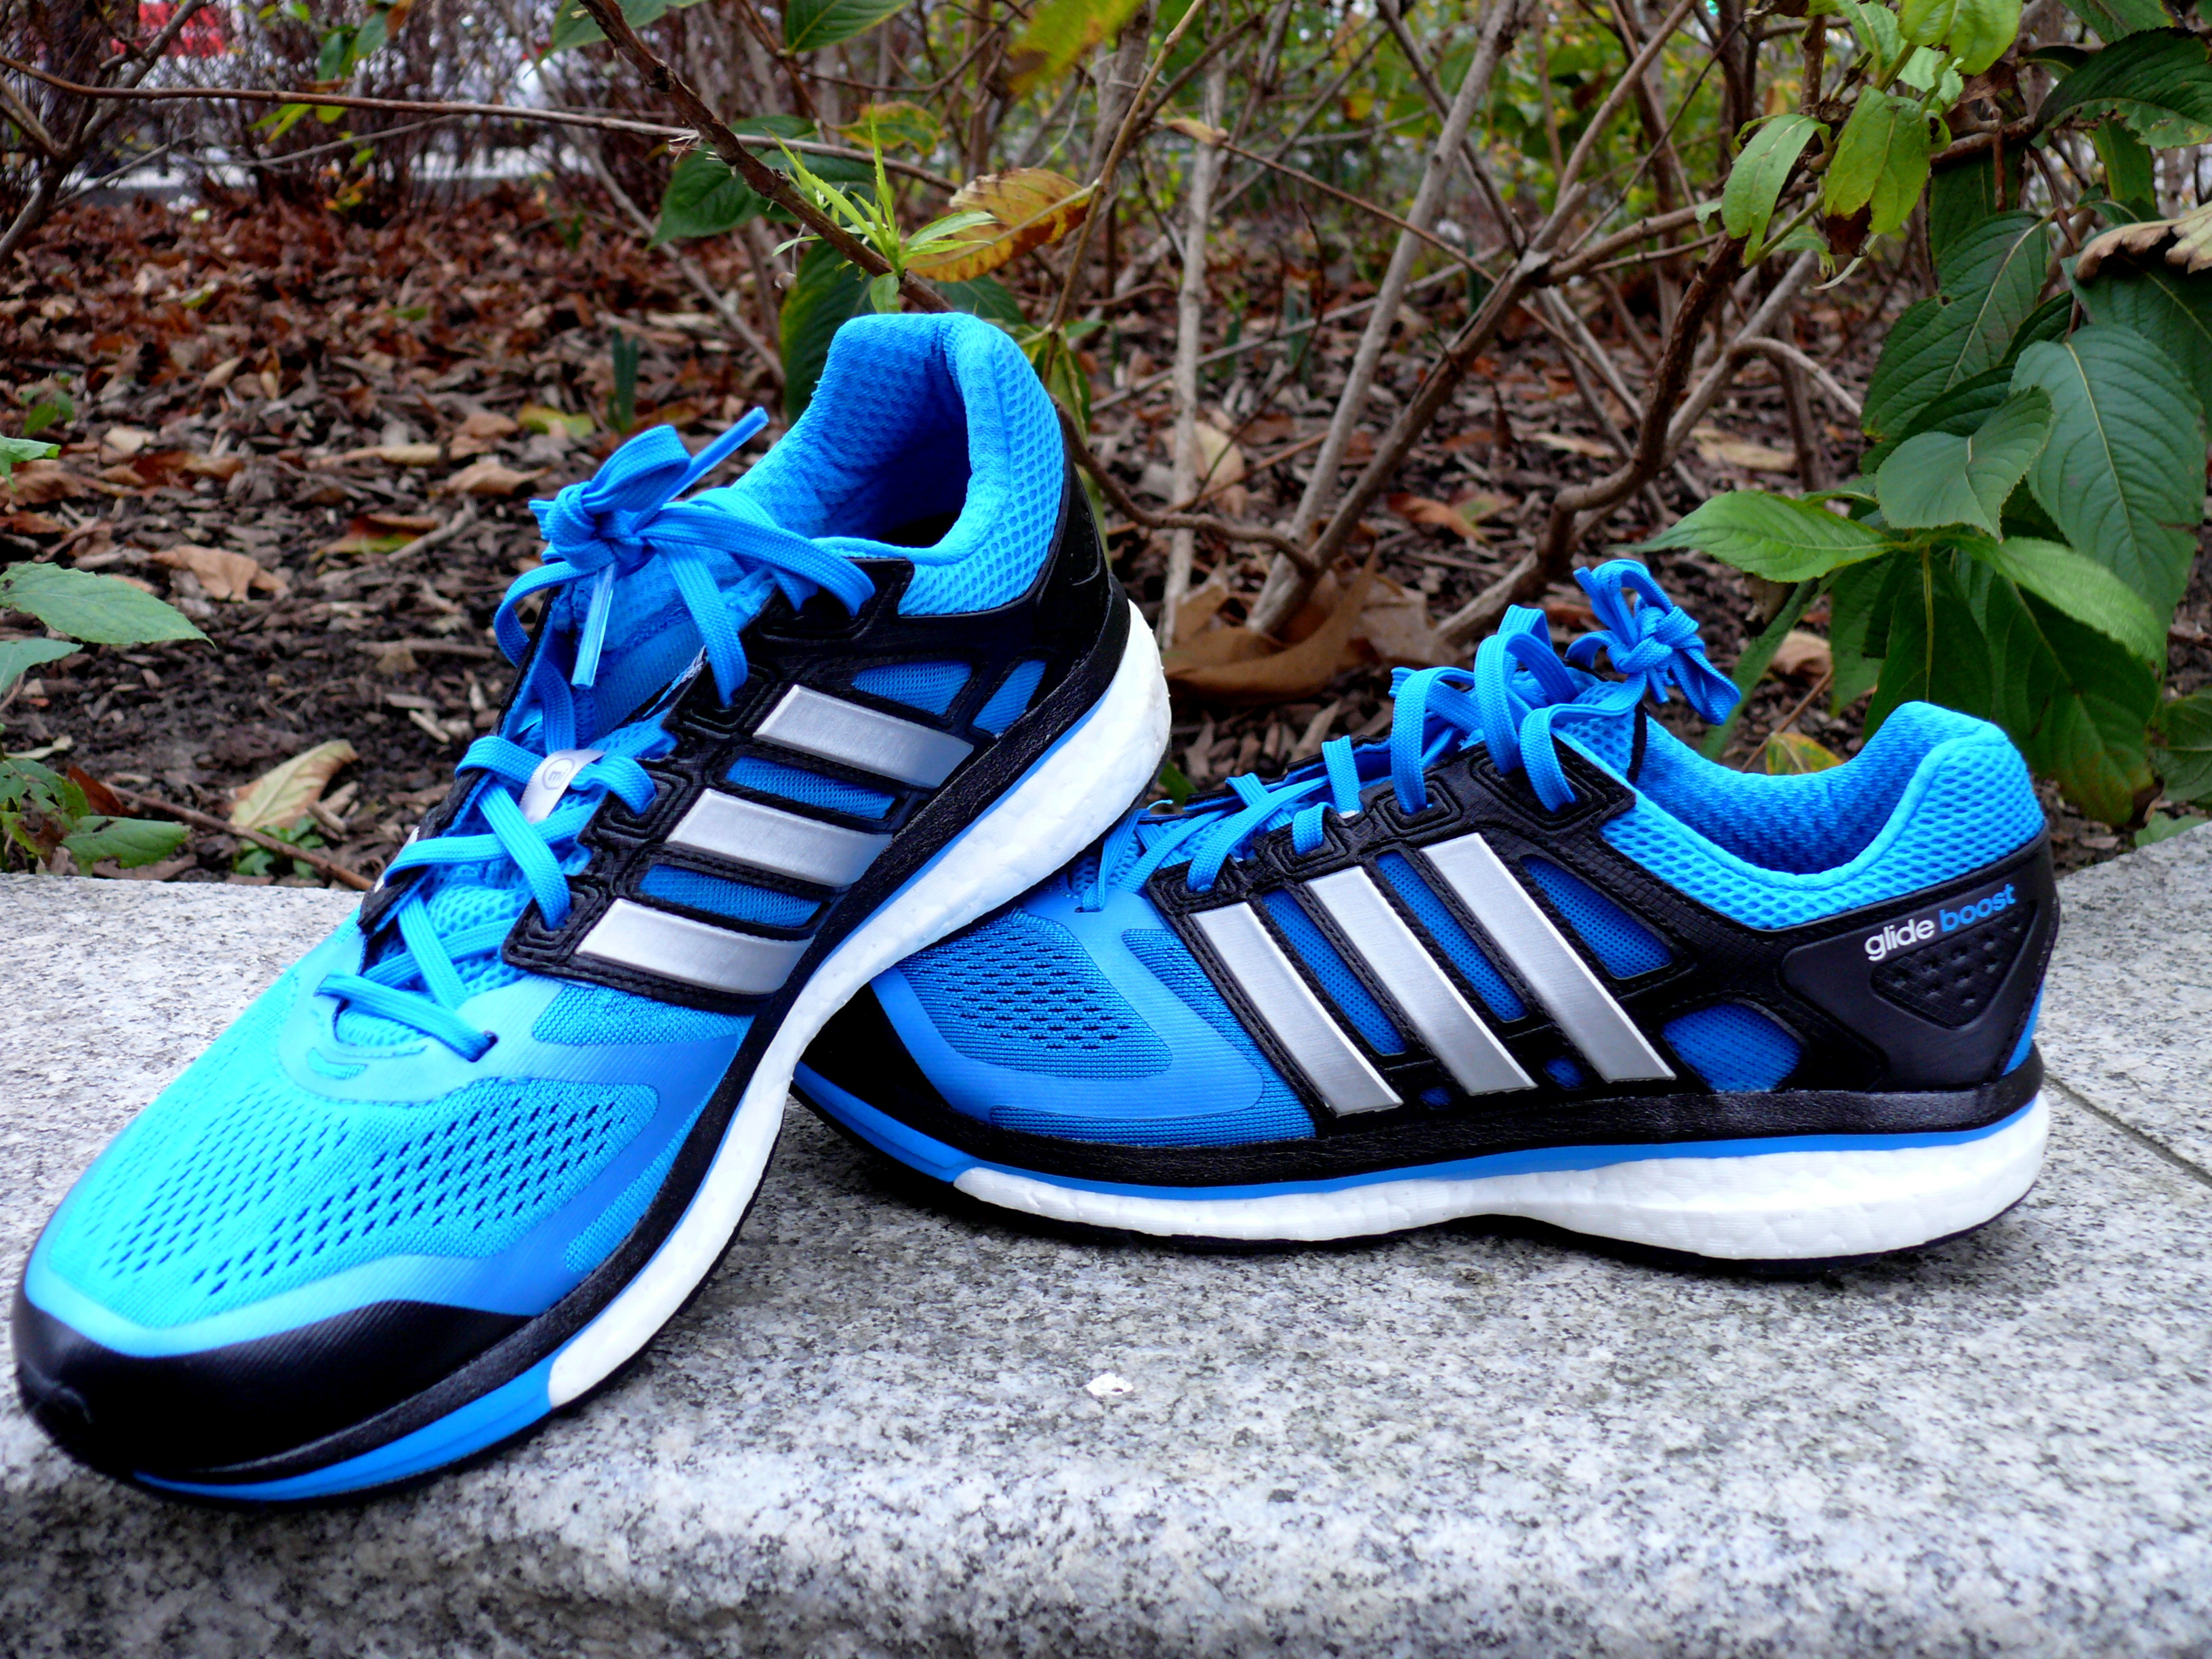 Adidas Boost Tendinite